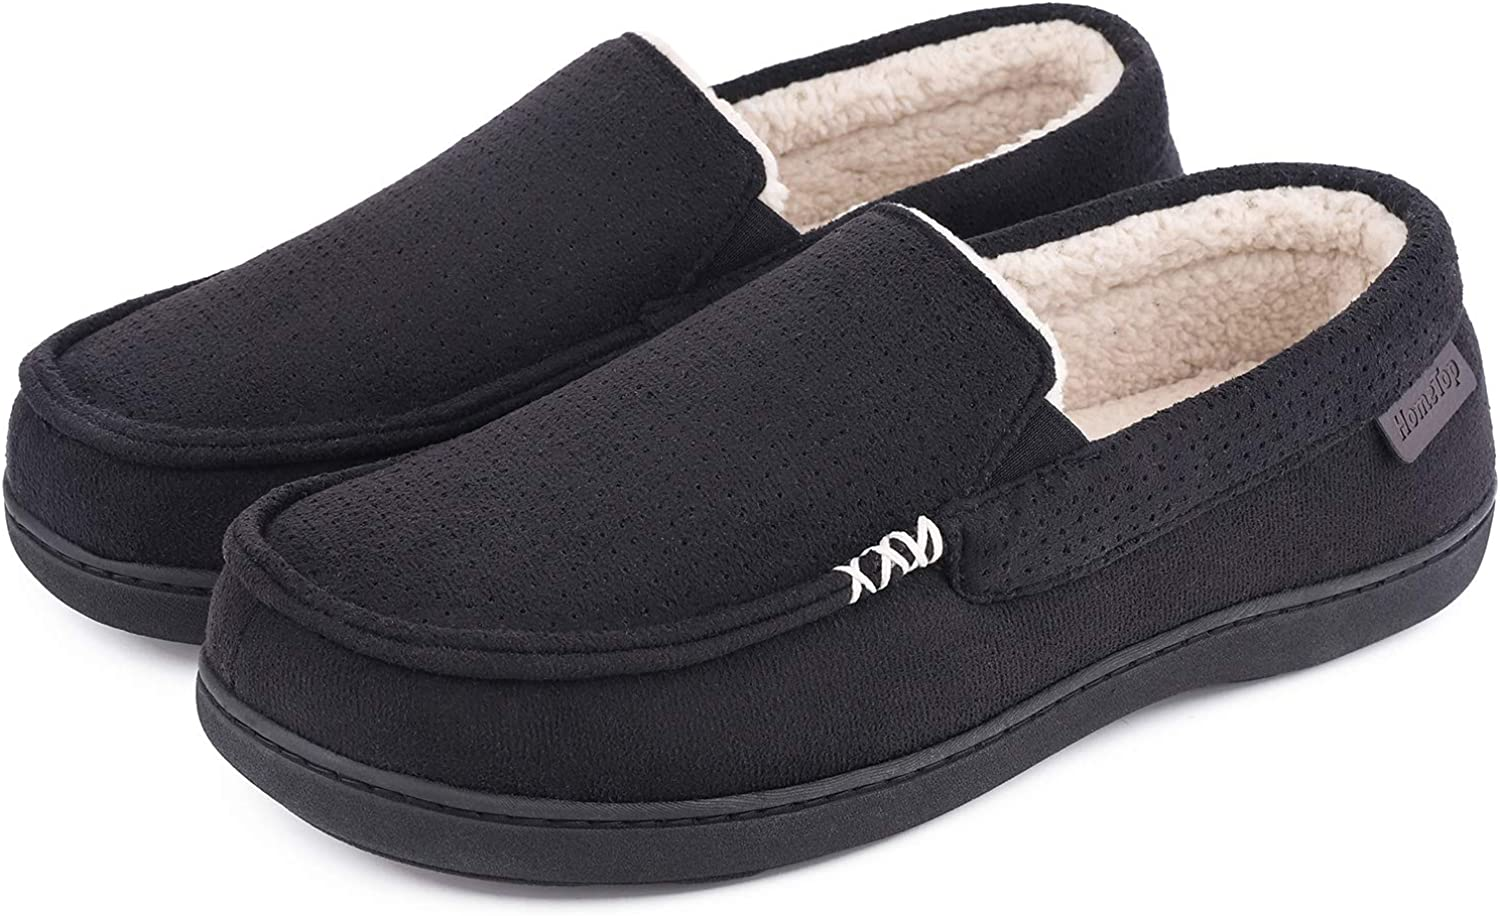 Top 10 Warm Slippers For Men Home